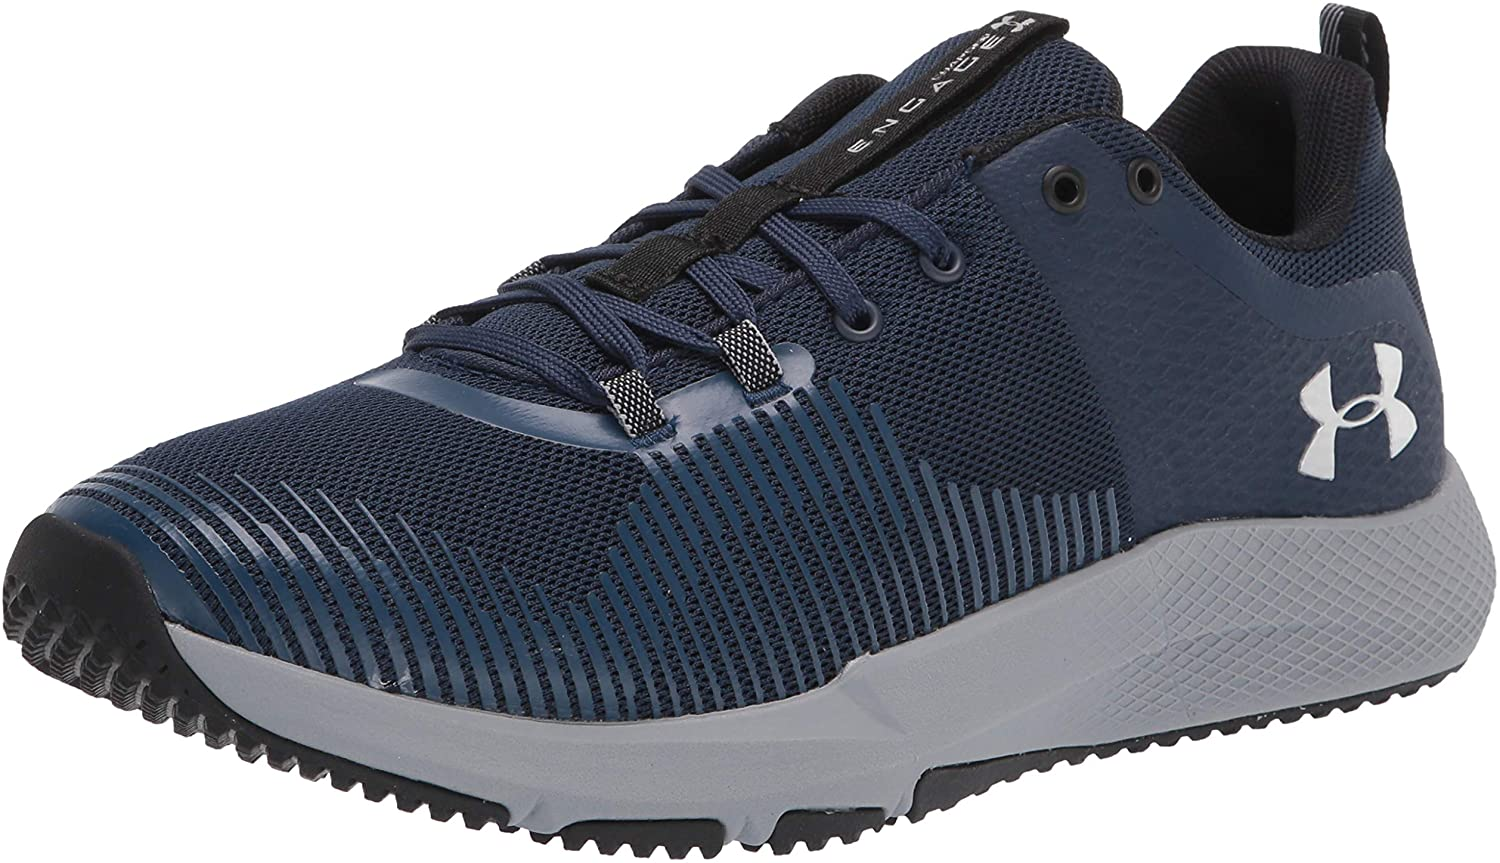 Under Armour Charged Engage Calzado deportivo, Hombre